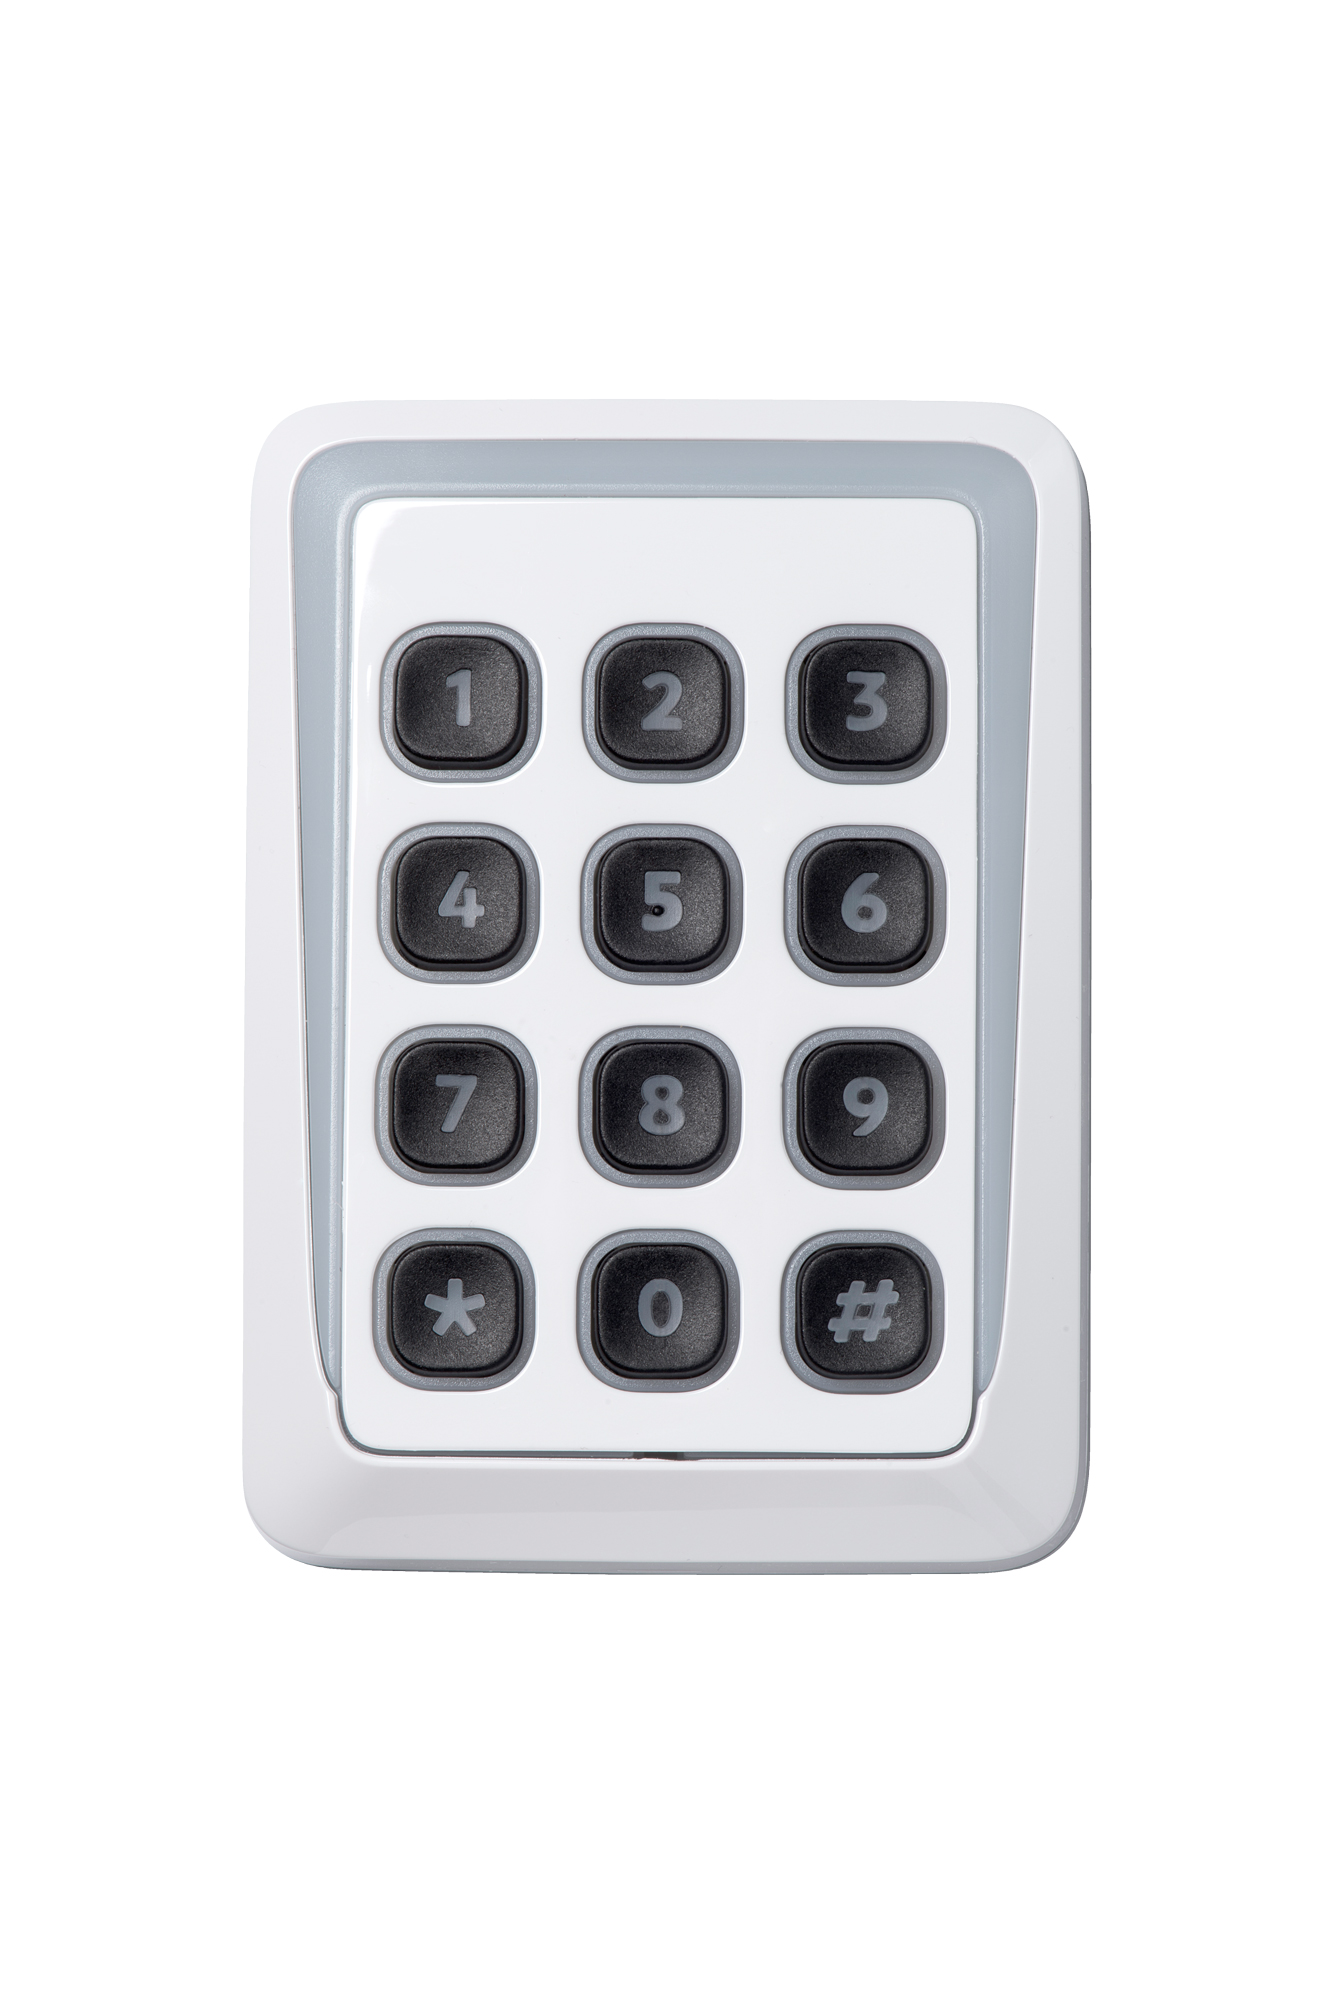 sc9100-md-mp-v-cidron-with-keypad-glossy-white-h2000px